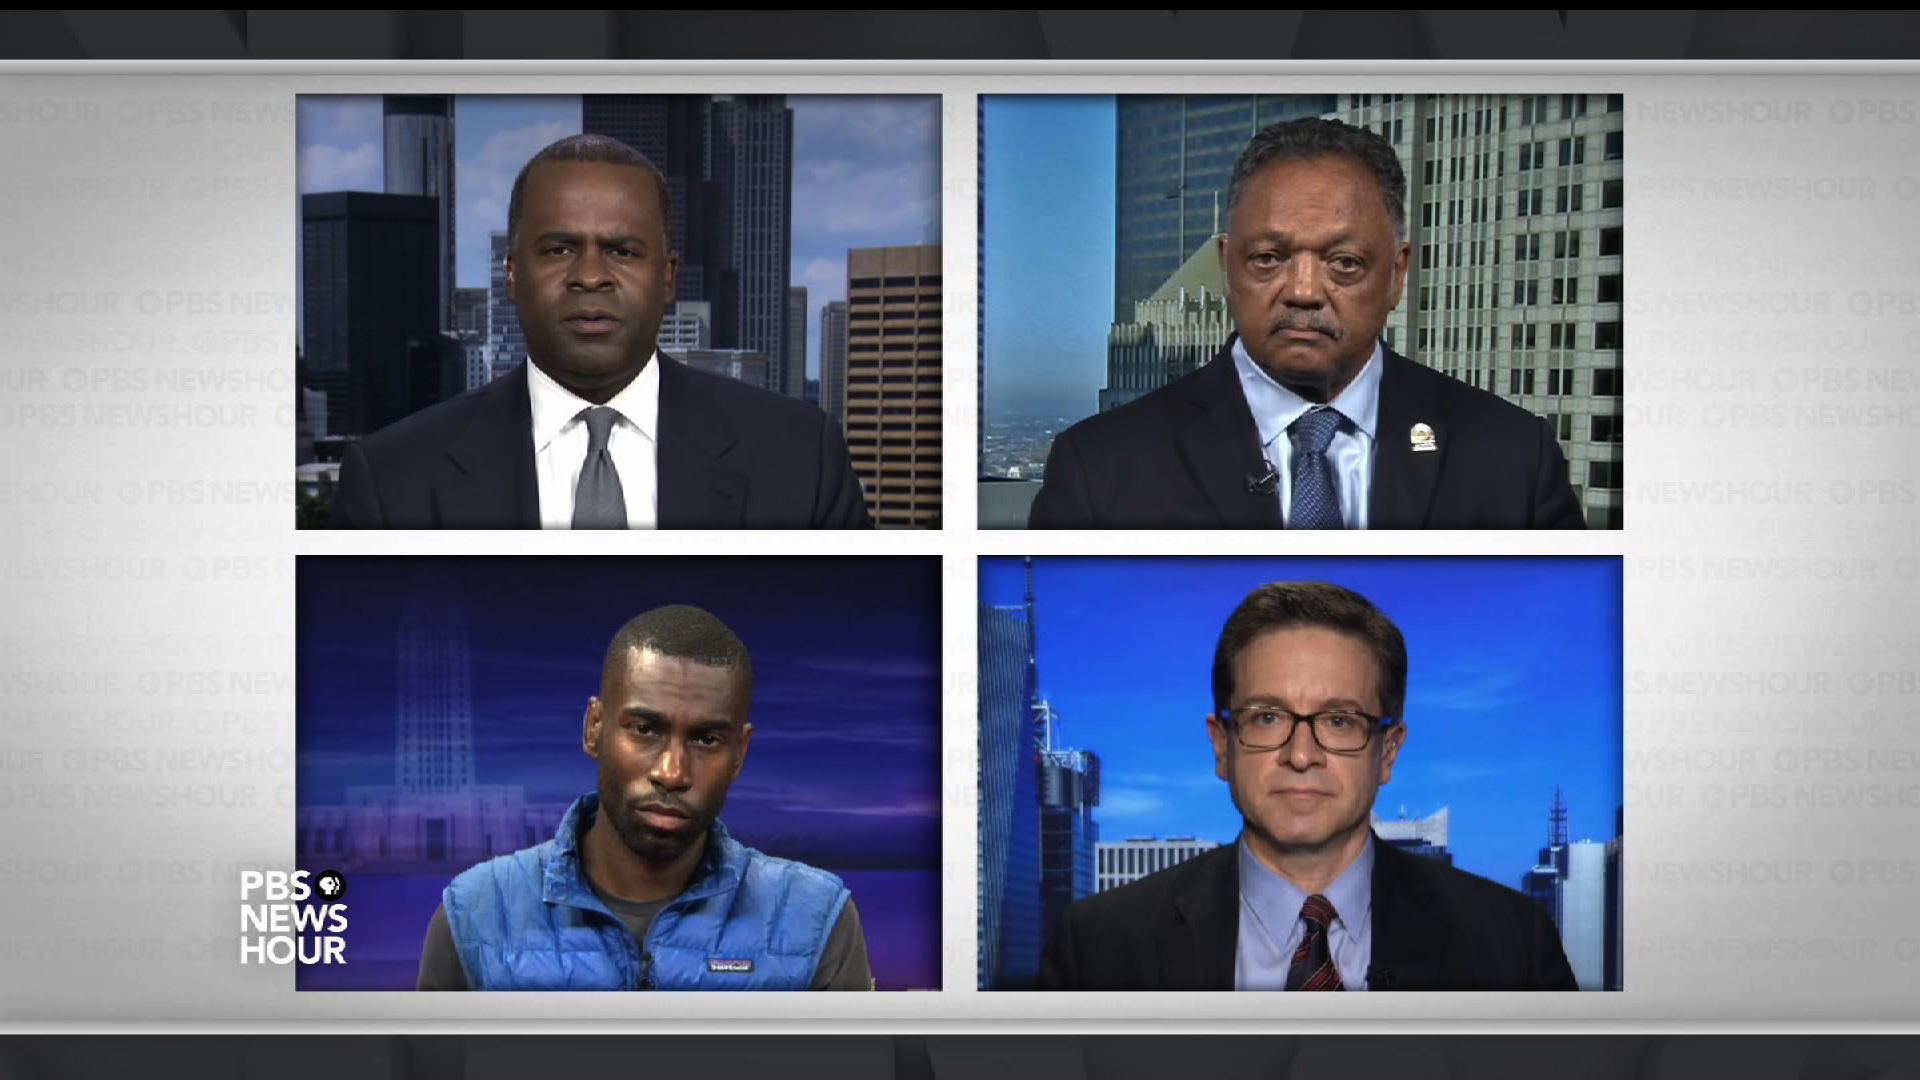 Is Dallas a Turning Point in the Race and Policing Debate?